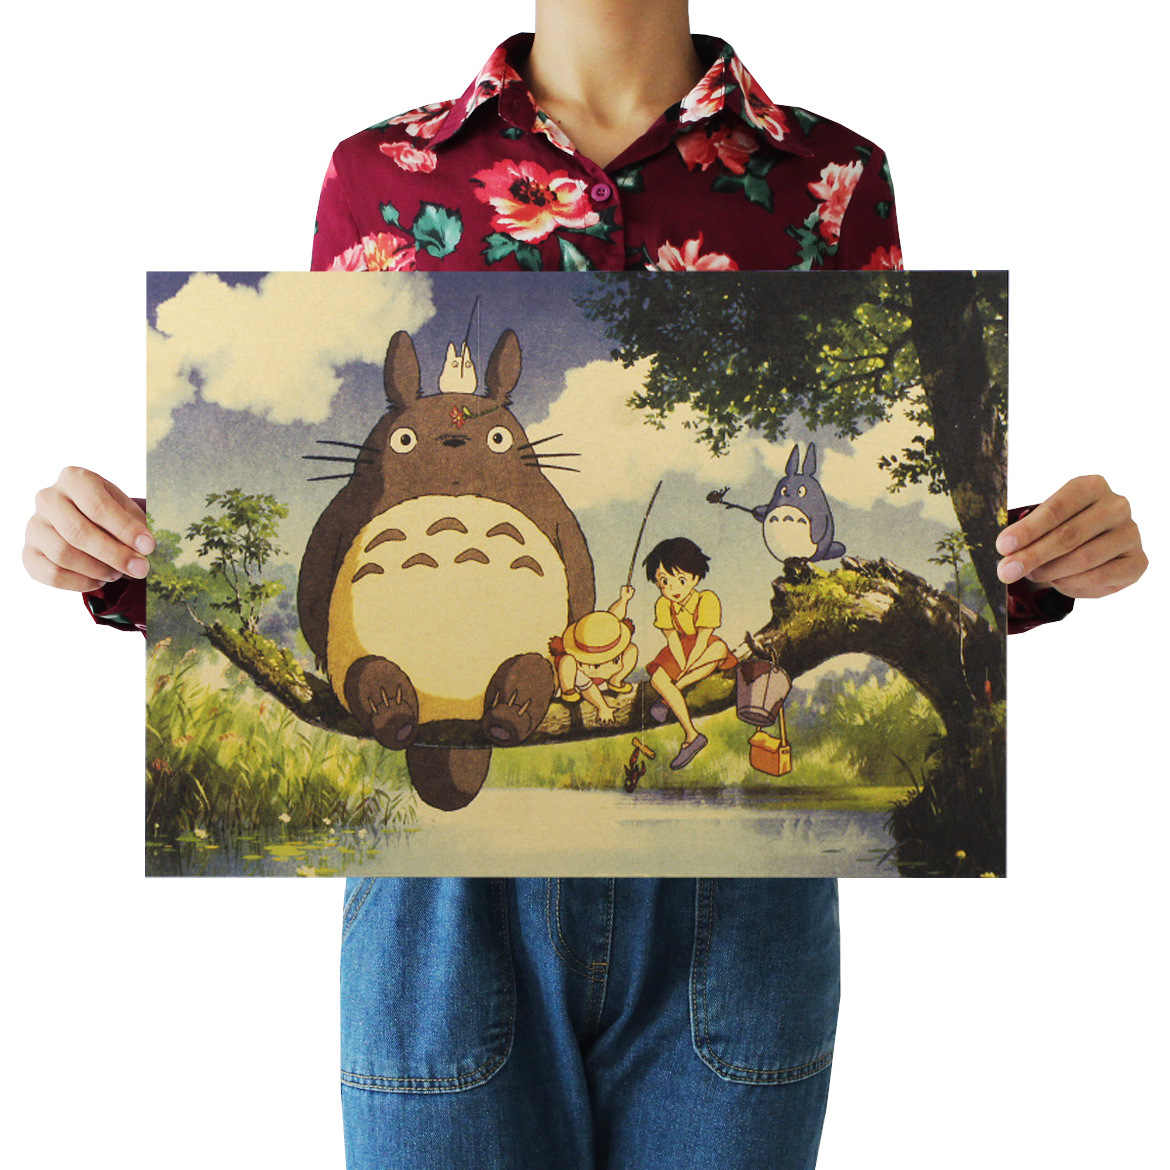 Dlkklb Movie Retro Poster Adornment Vintage Anime Posters Prints Living Room Decorative Painting Core Kraft Paper Wall Stickers